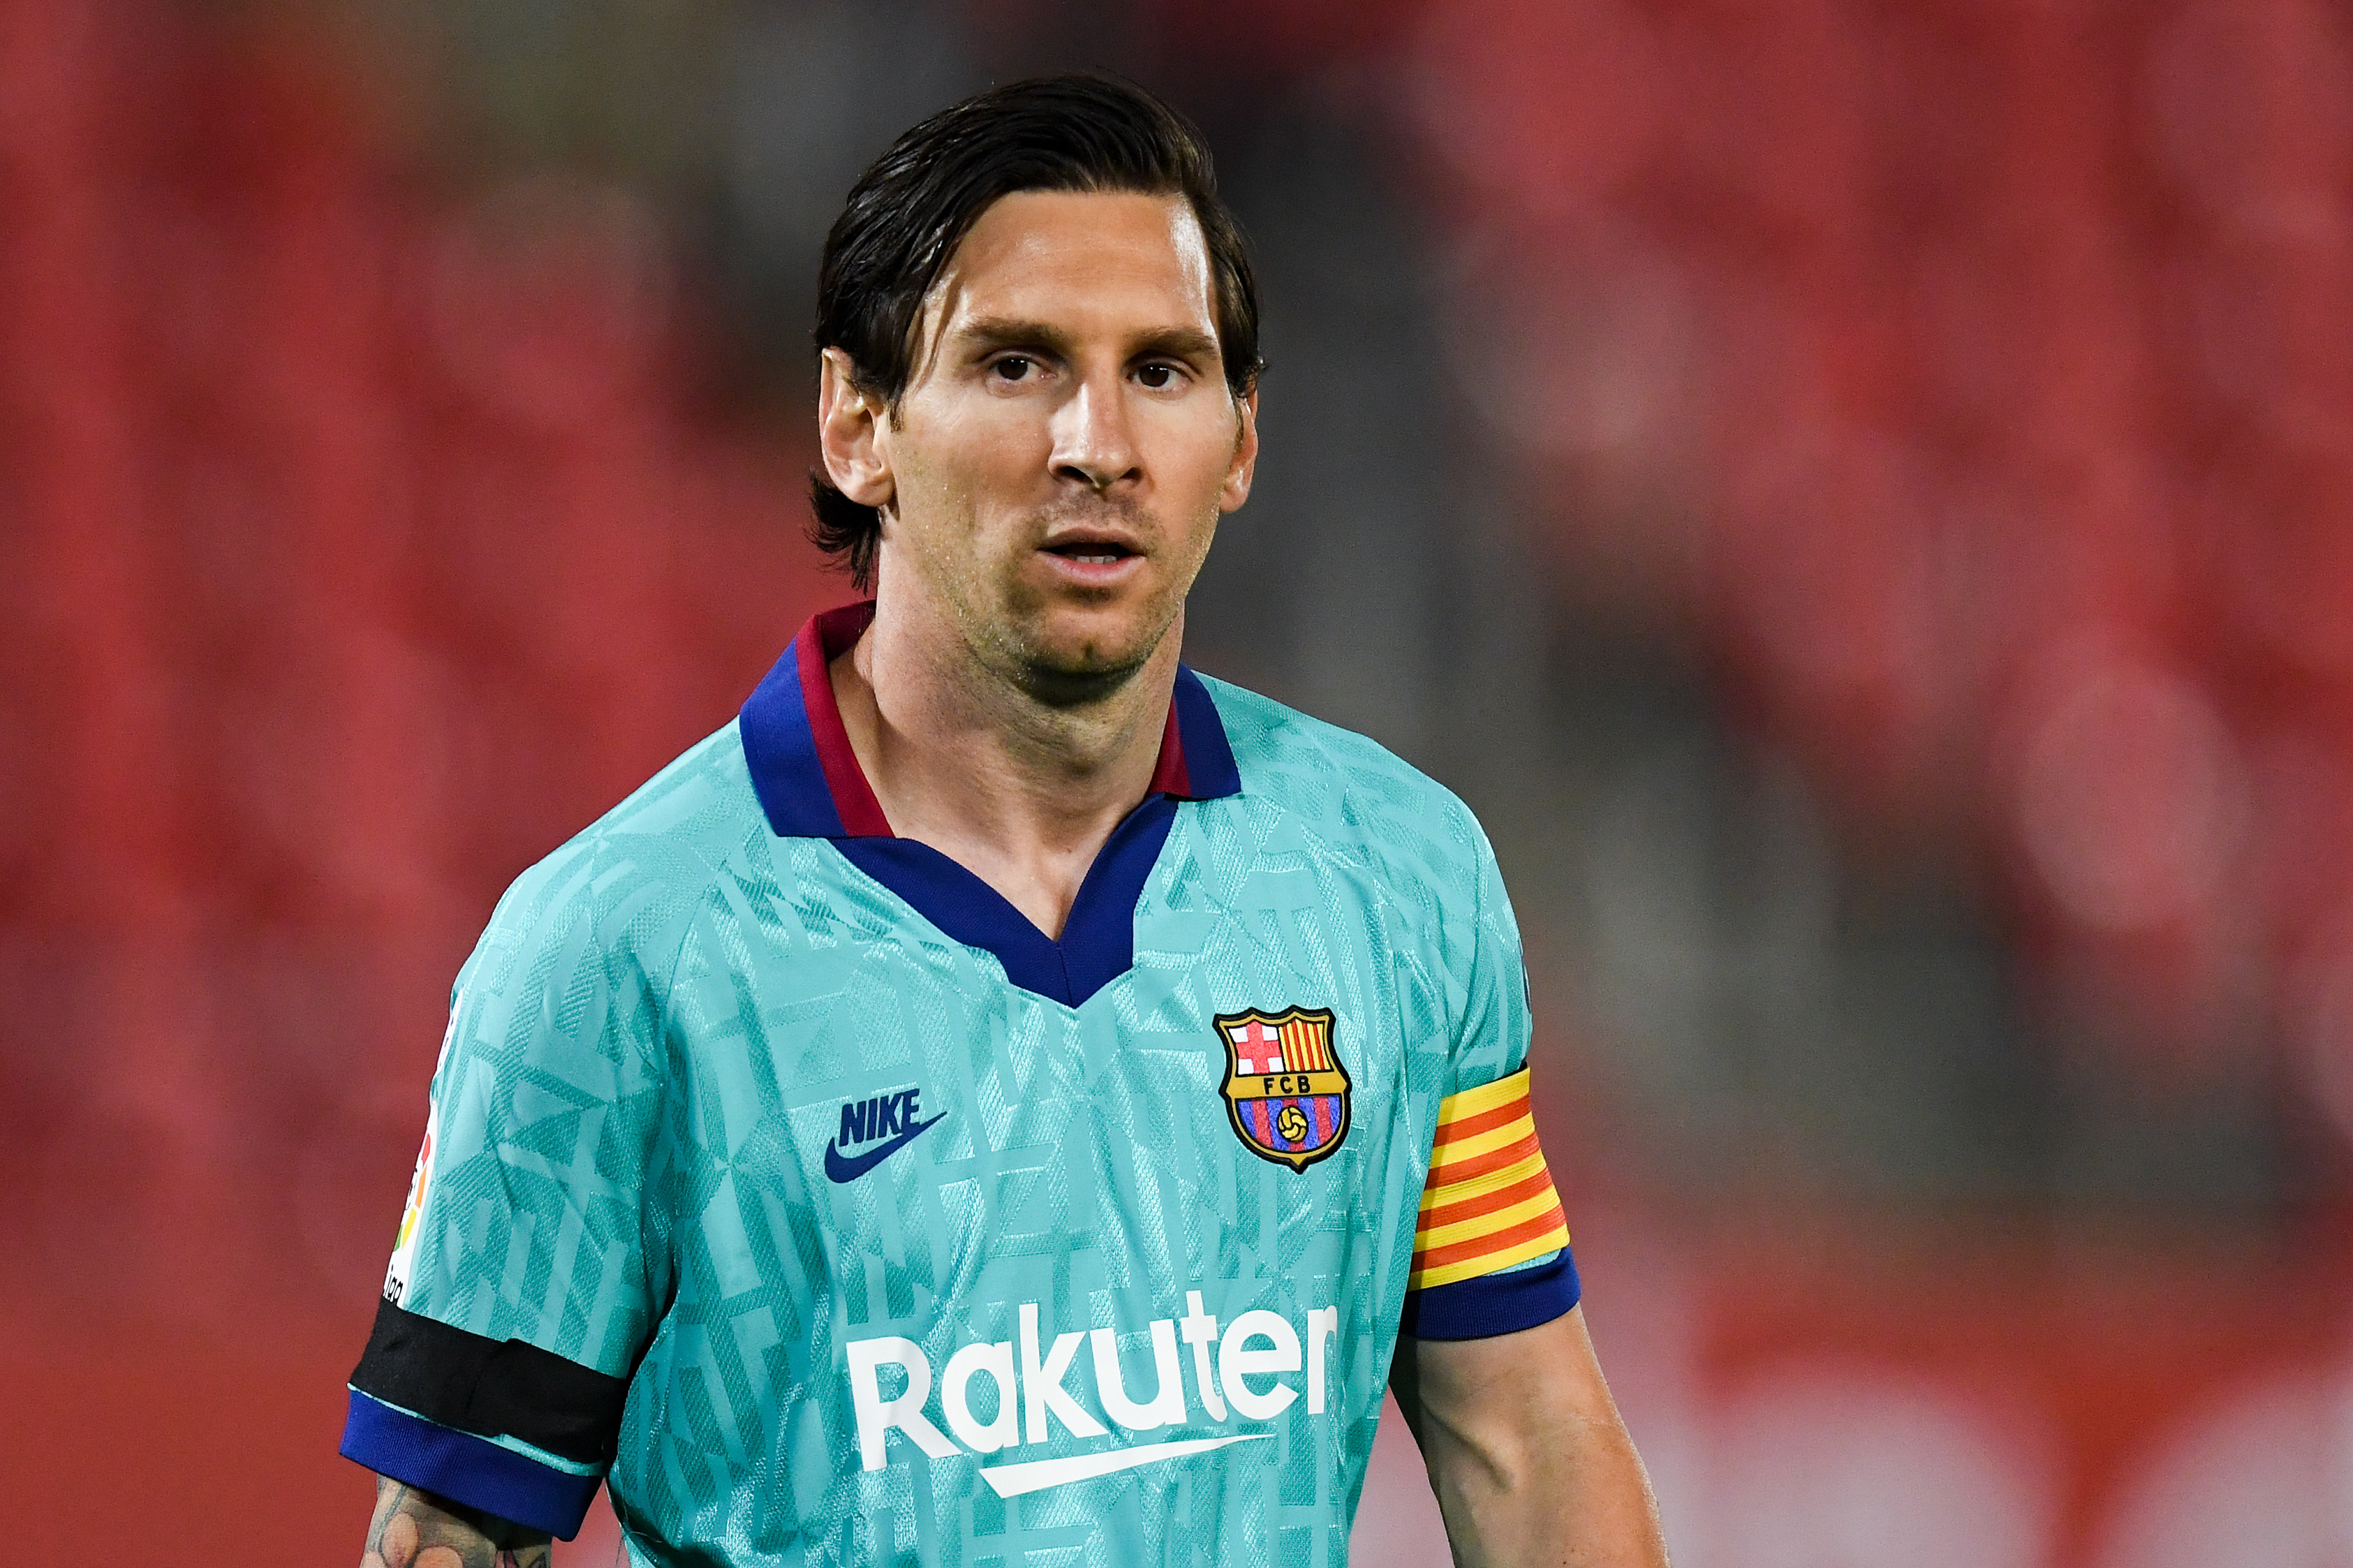 Lionel Messi will finish his career at Barcelona, according to club president Josep Maria Bartomeu